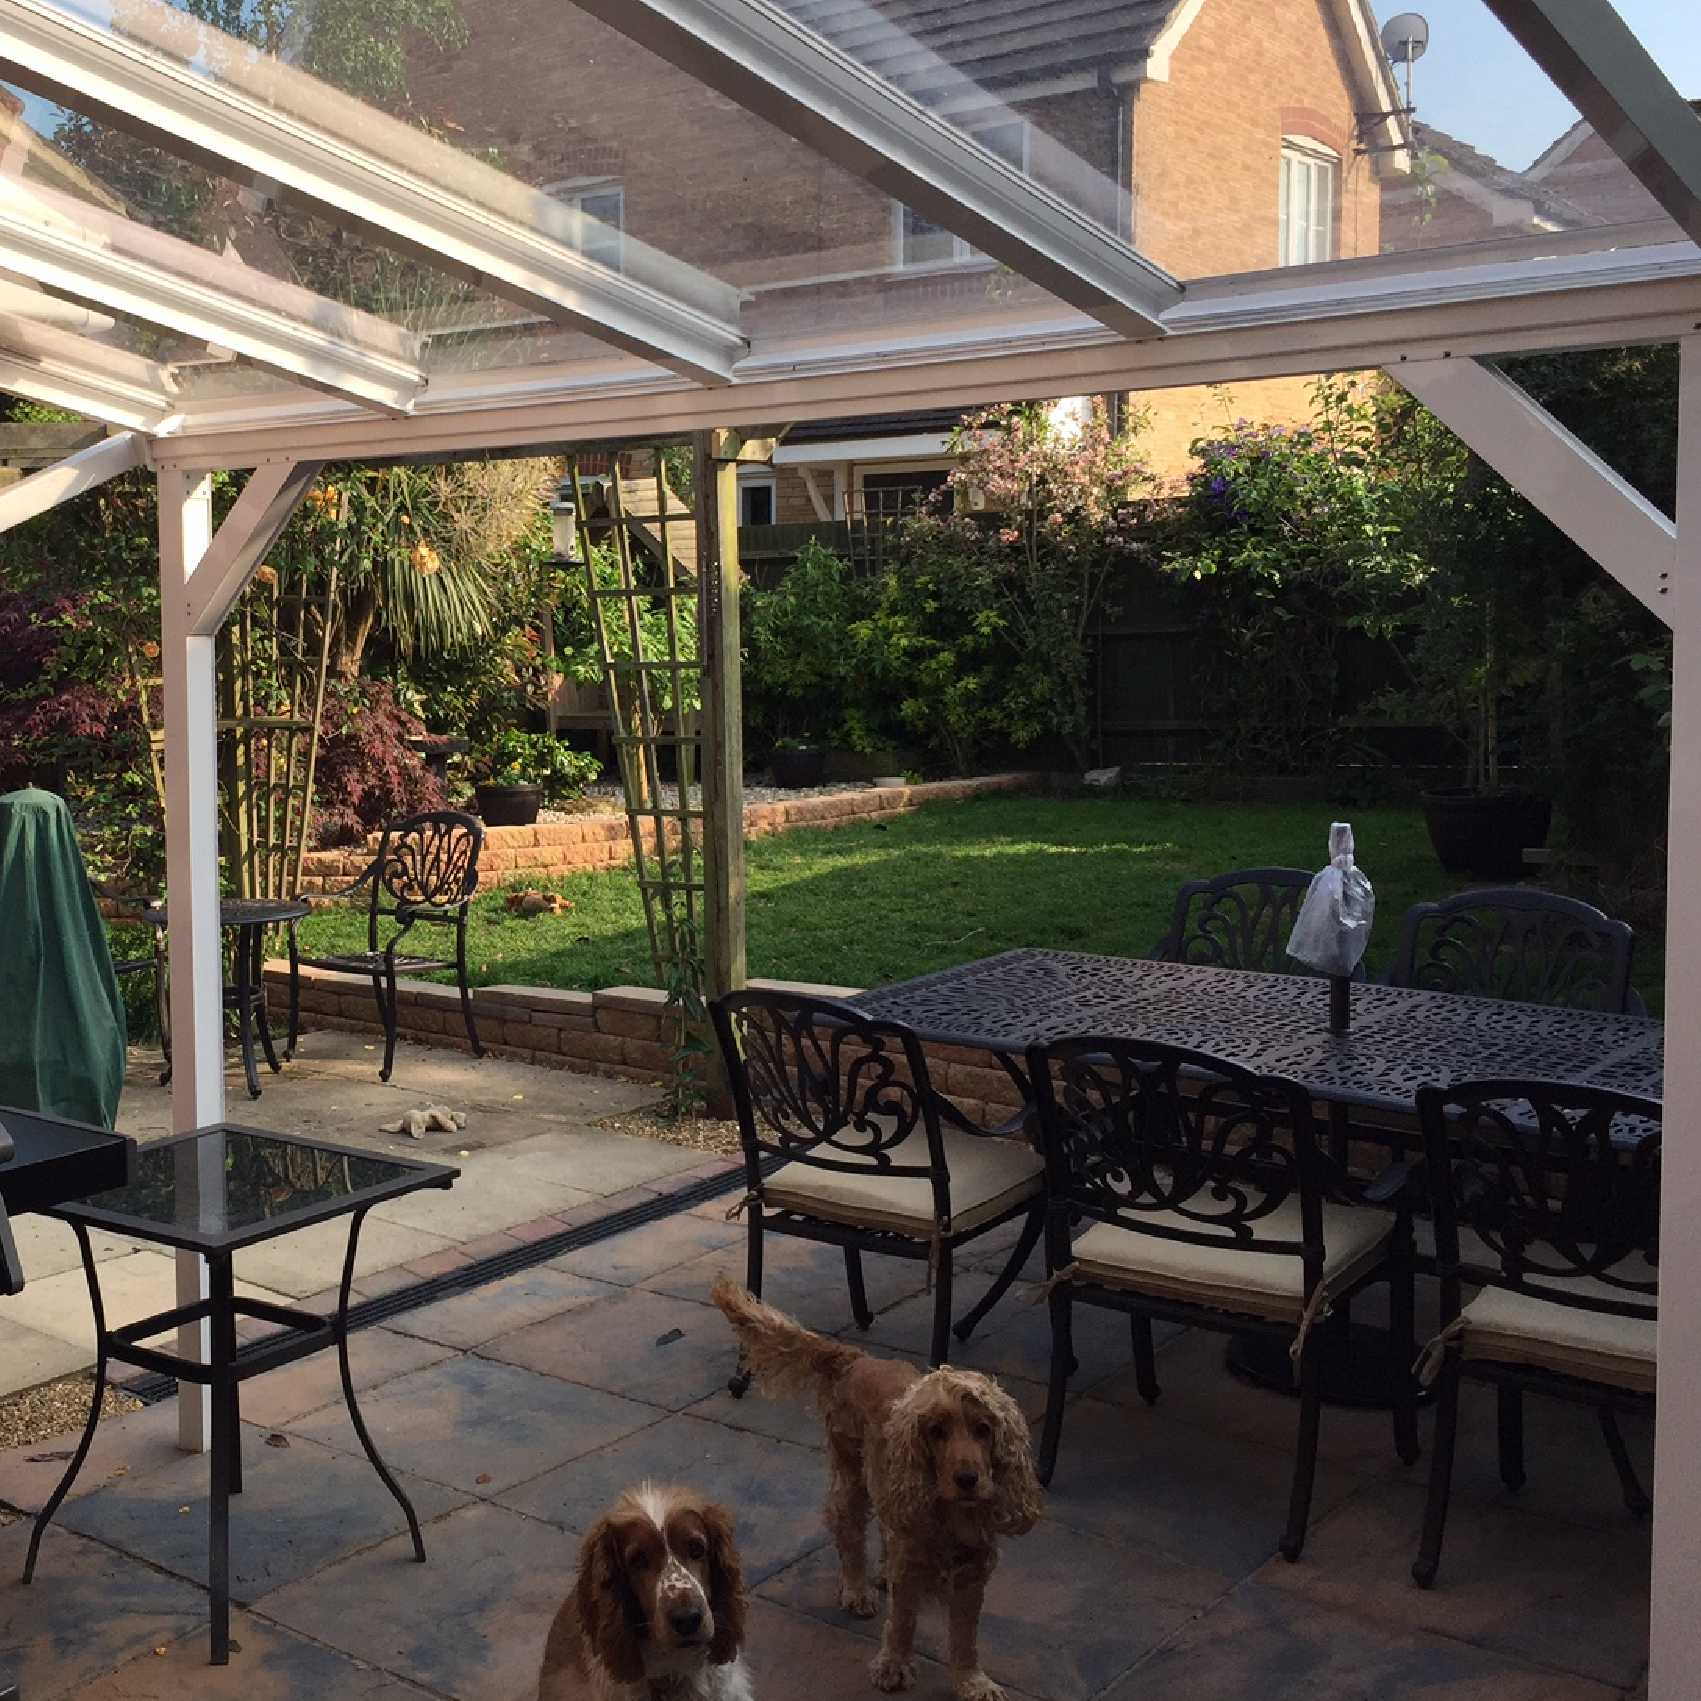 Affordable Omega Smart White Lean-To Canopy with 6mm Glass Clear Plate Polycarbonate Glazing - 5.6m (W) x 2.5m (P), (3) Supporting Posts